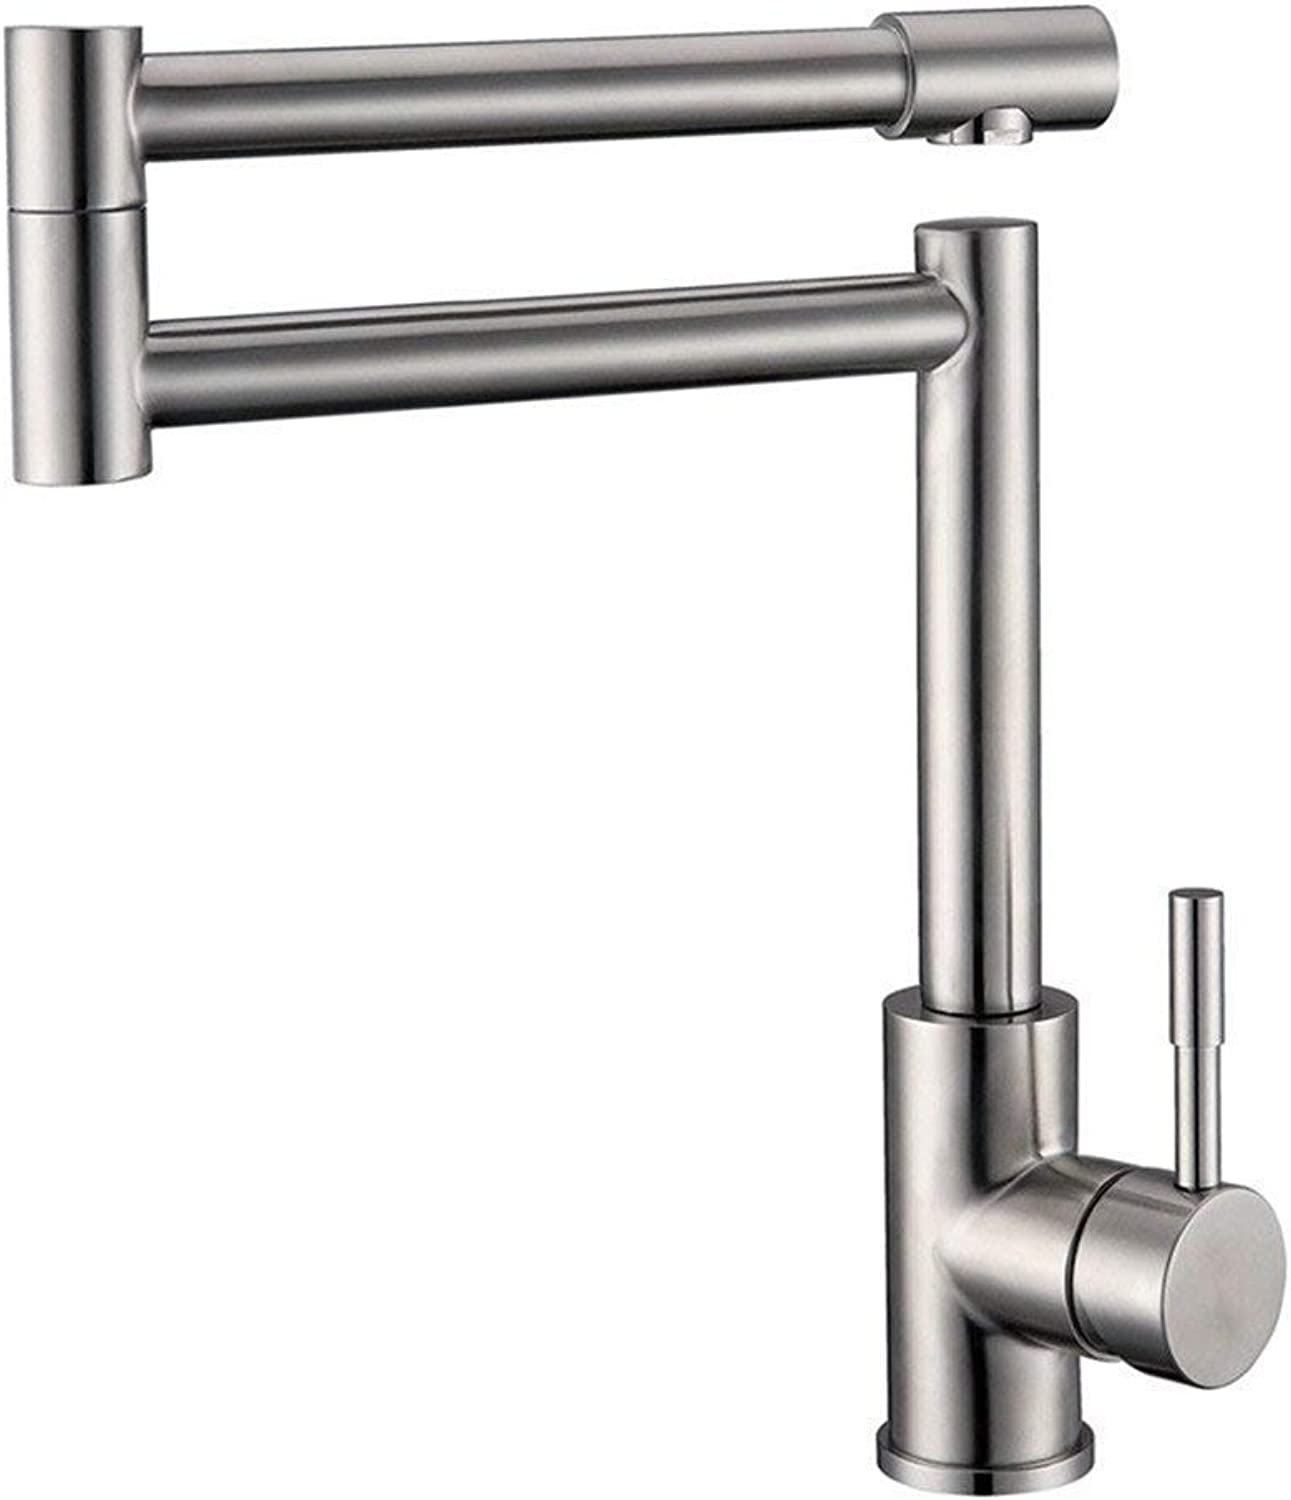 304 Stainless Steel Sink Faucet Folding Kitchen Lead-free Tap 360 ° redatable Sink Tap Single Lever Mixer High Swivel Spout